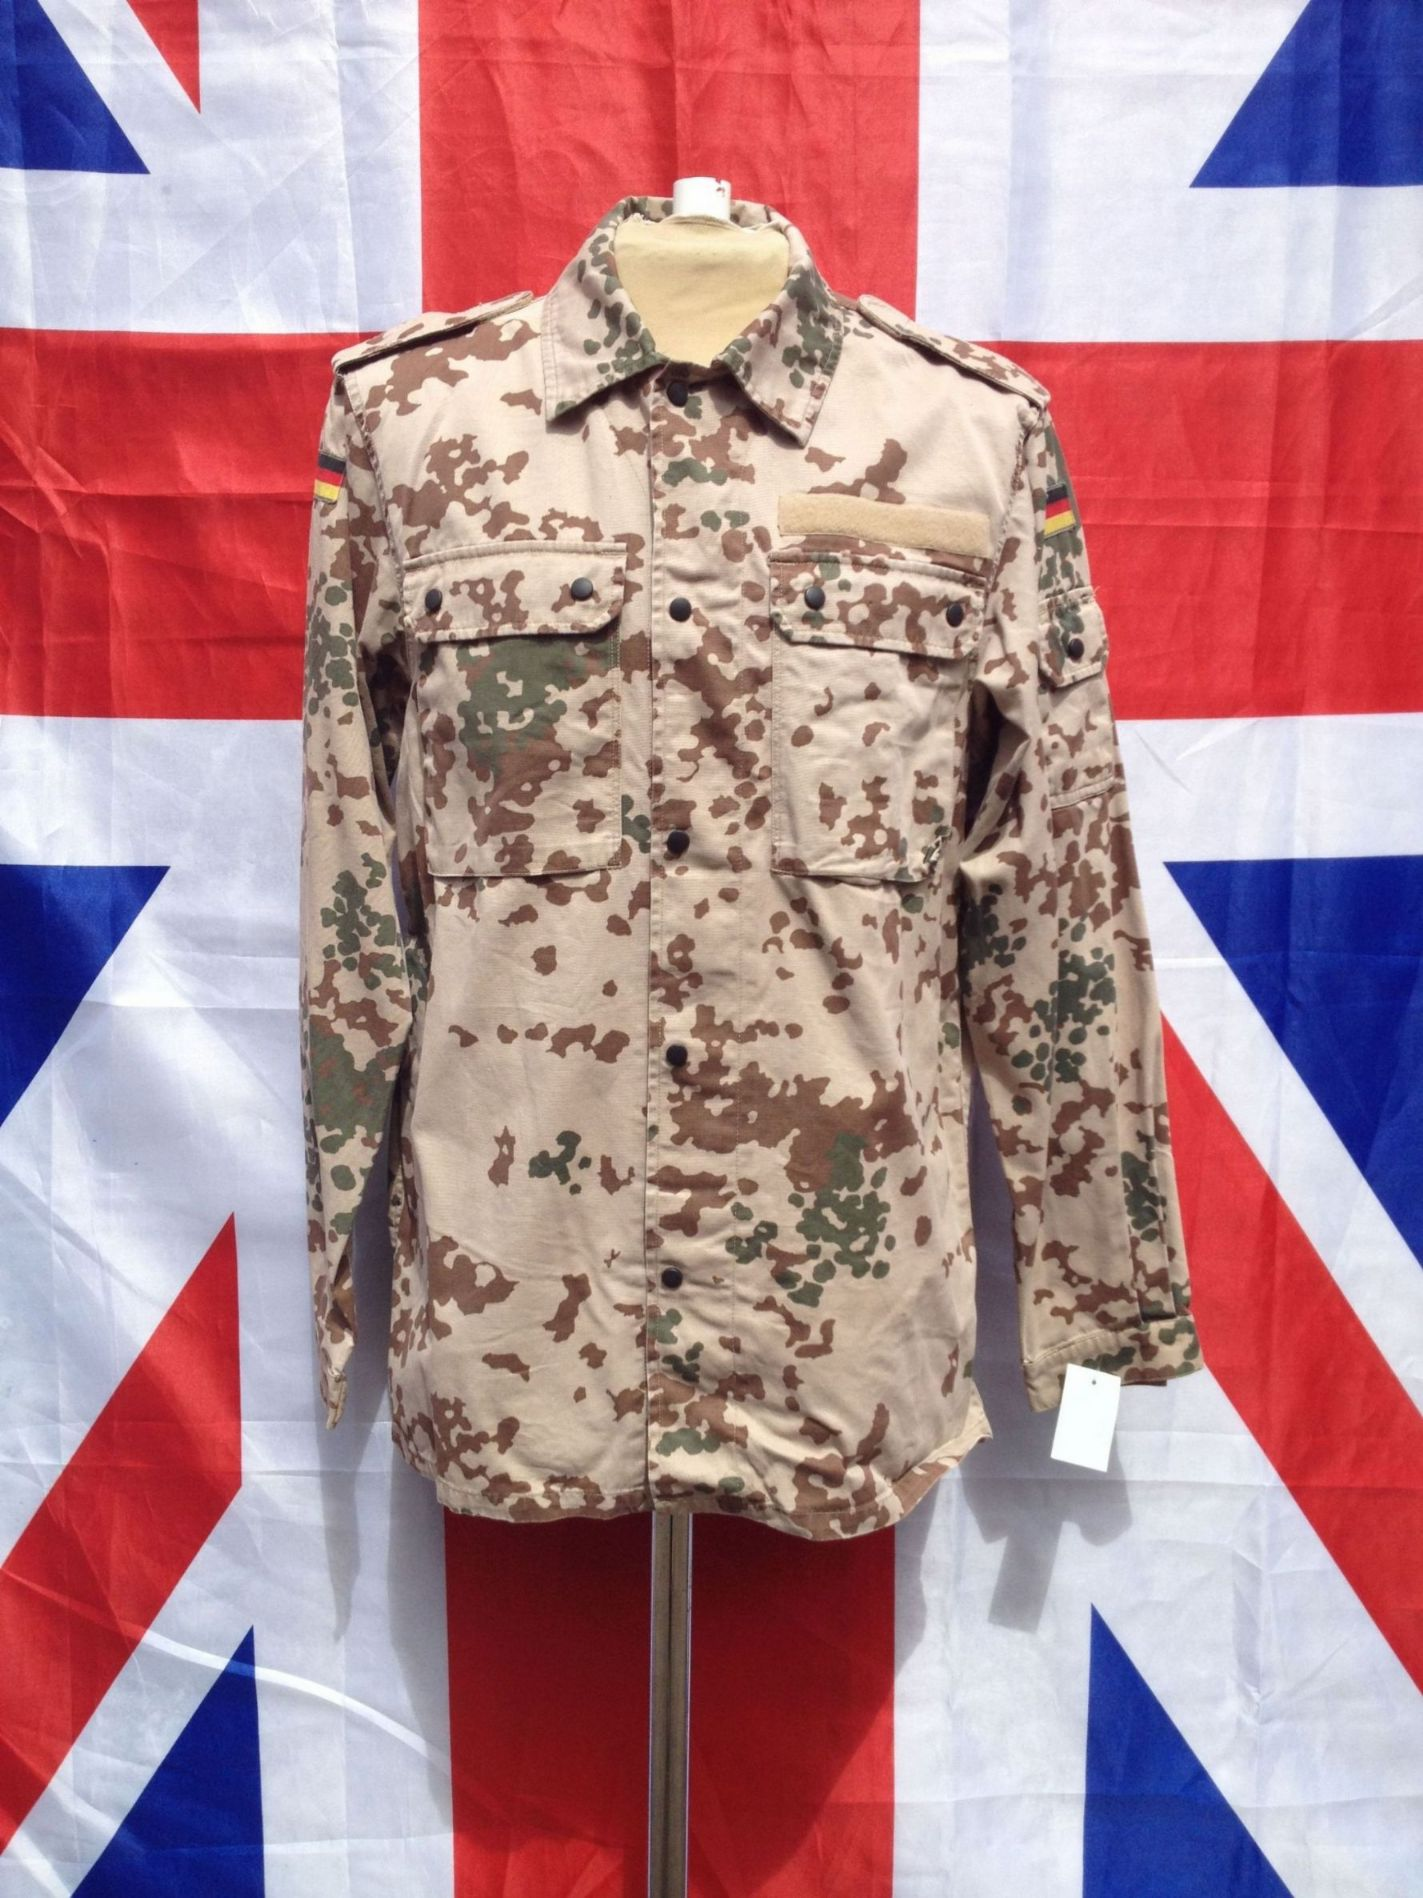 29feb08ae57e1 ... EX ARMY MILITARY GERMAN DESERT CAMO LIGHT WEIGHT JACKET; variant  attributes. 11111